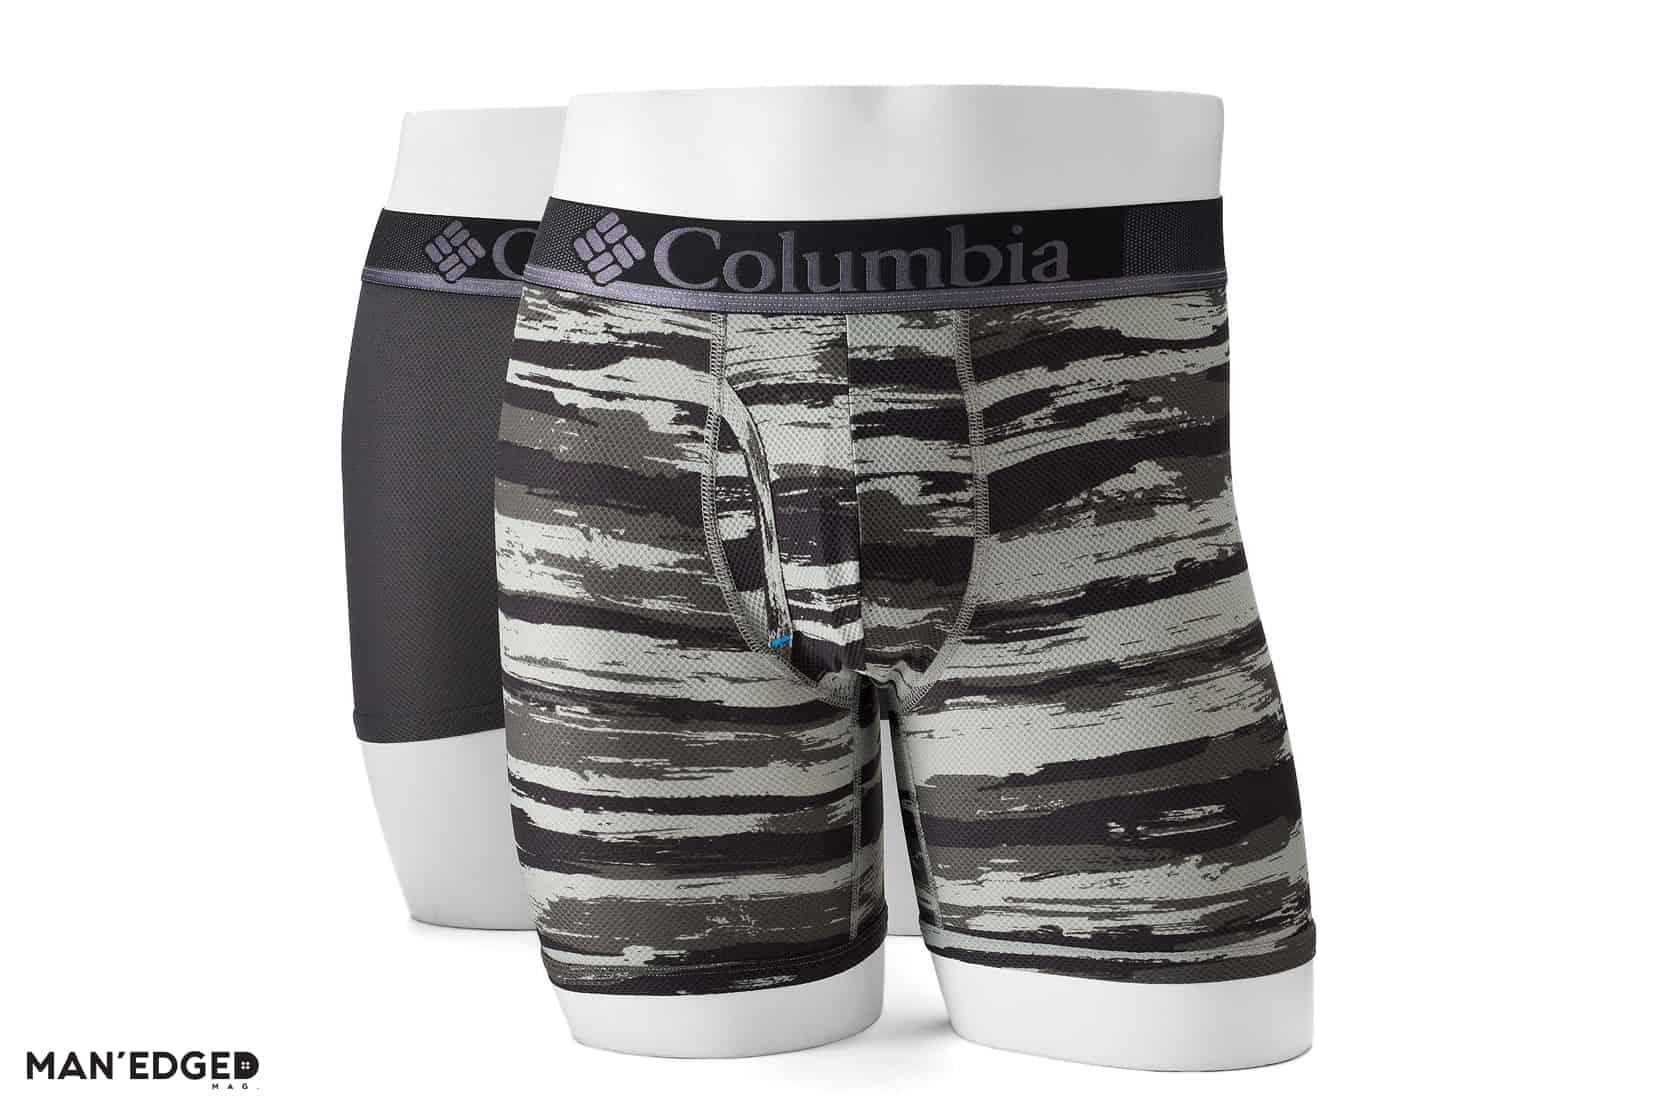 The Outdoorsman Gift Guide featuring Columbia Men's Boxer Briefs